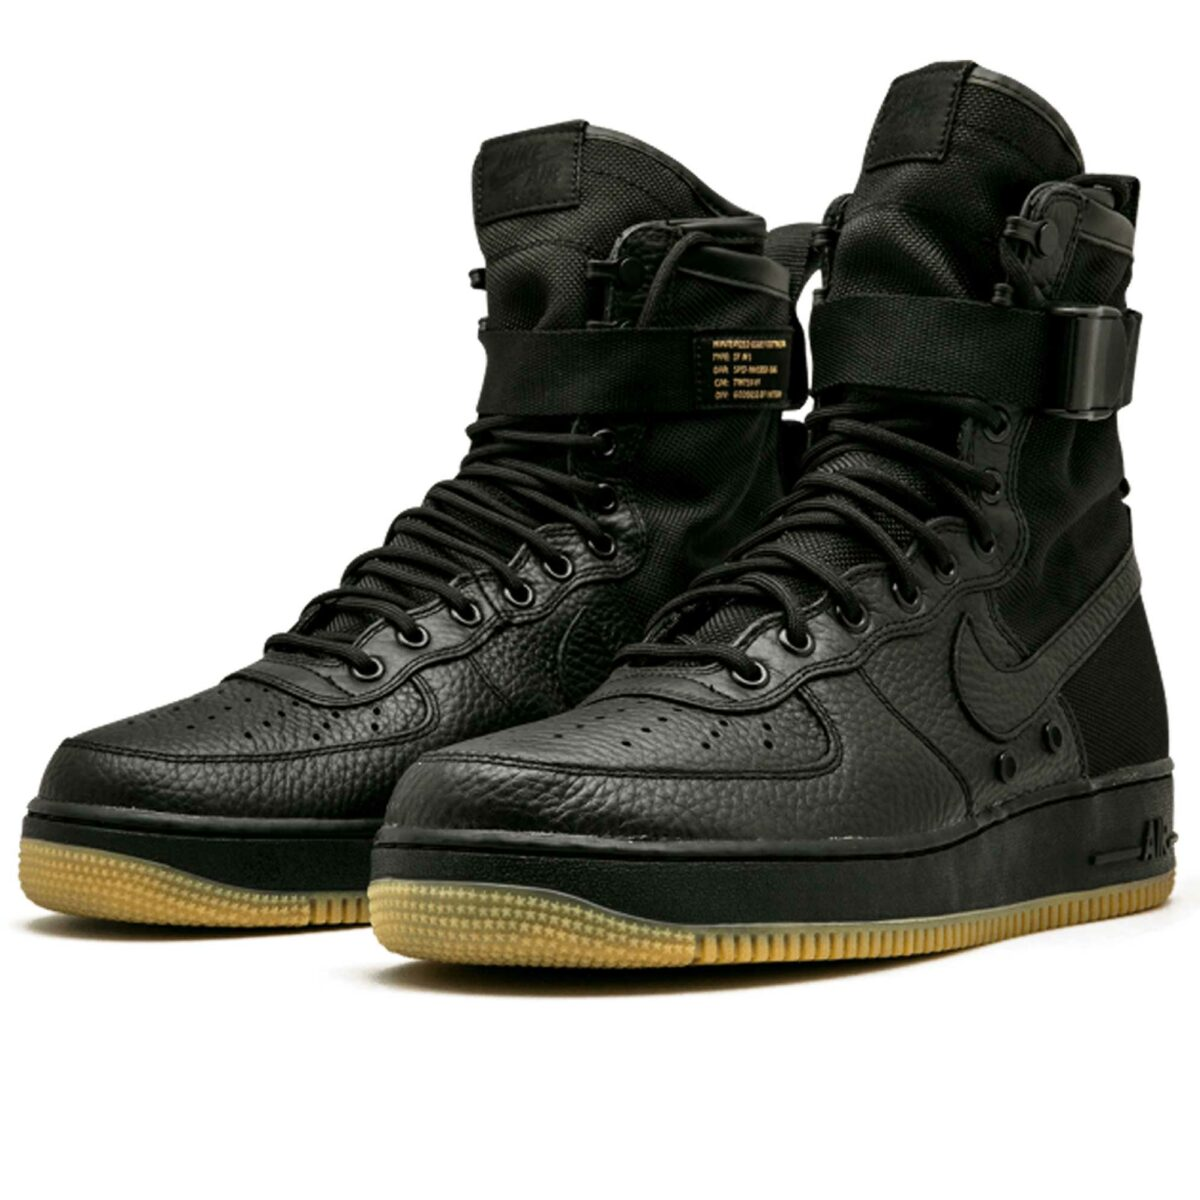 nike sf air force 1 black 864024_001 купить